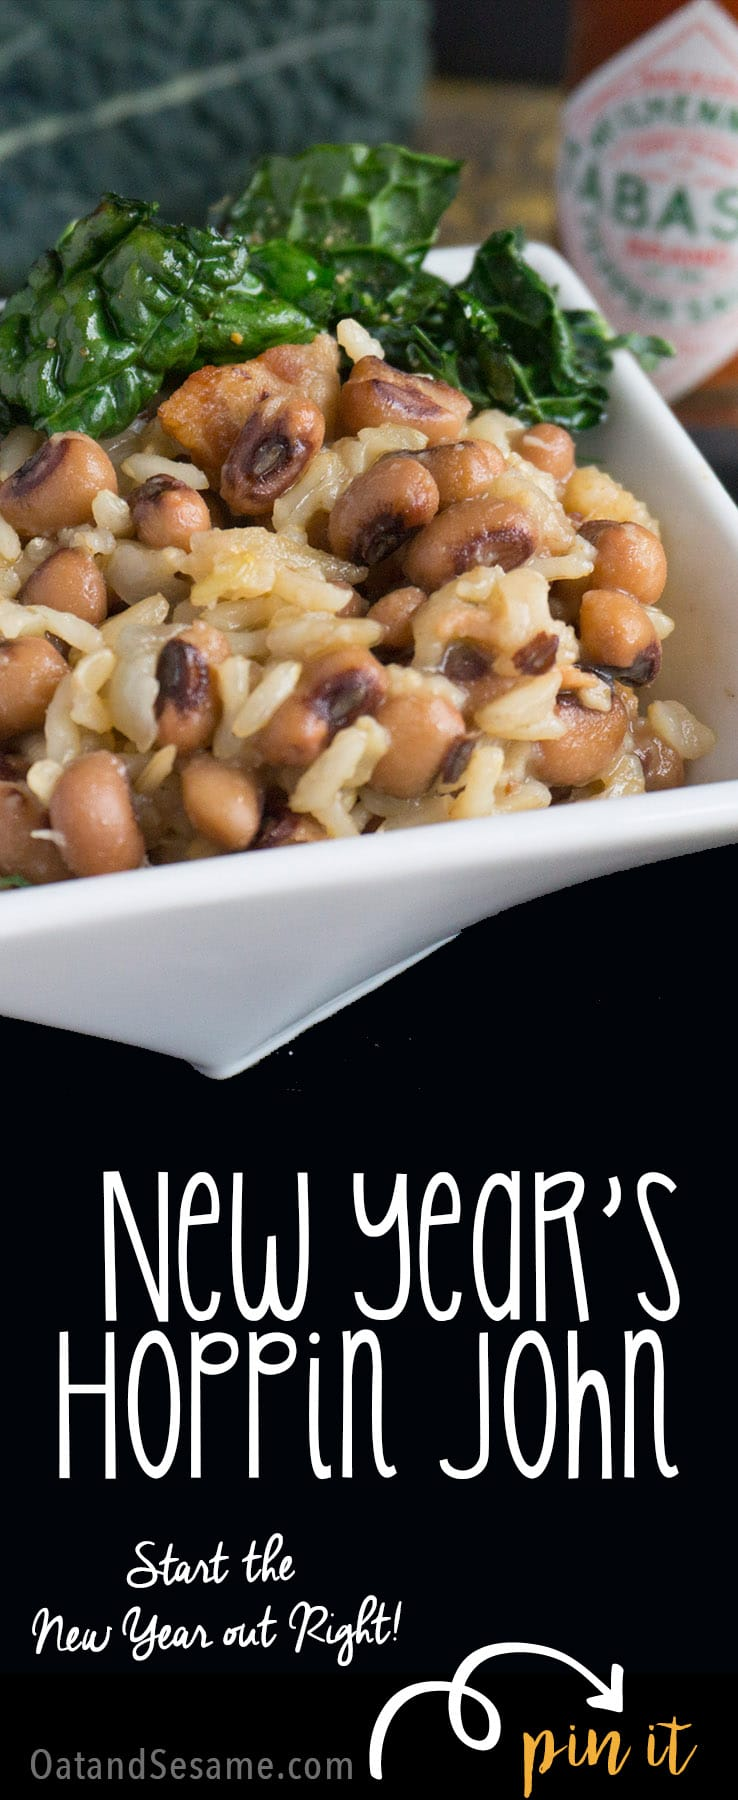 This Traditional New Year's Day Hoppin' John recipe is both delicious and easy to make! Black Eyed Peas, Brown Rice, Bacon and Greens - Start your year off with a bit of Southern luck!   #SOUTHERNRECIPES   #NEWYEARS   #Recipes at OatandSesame.com